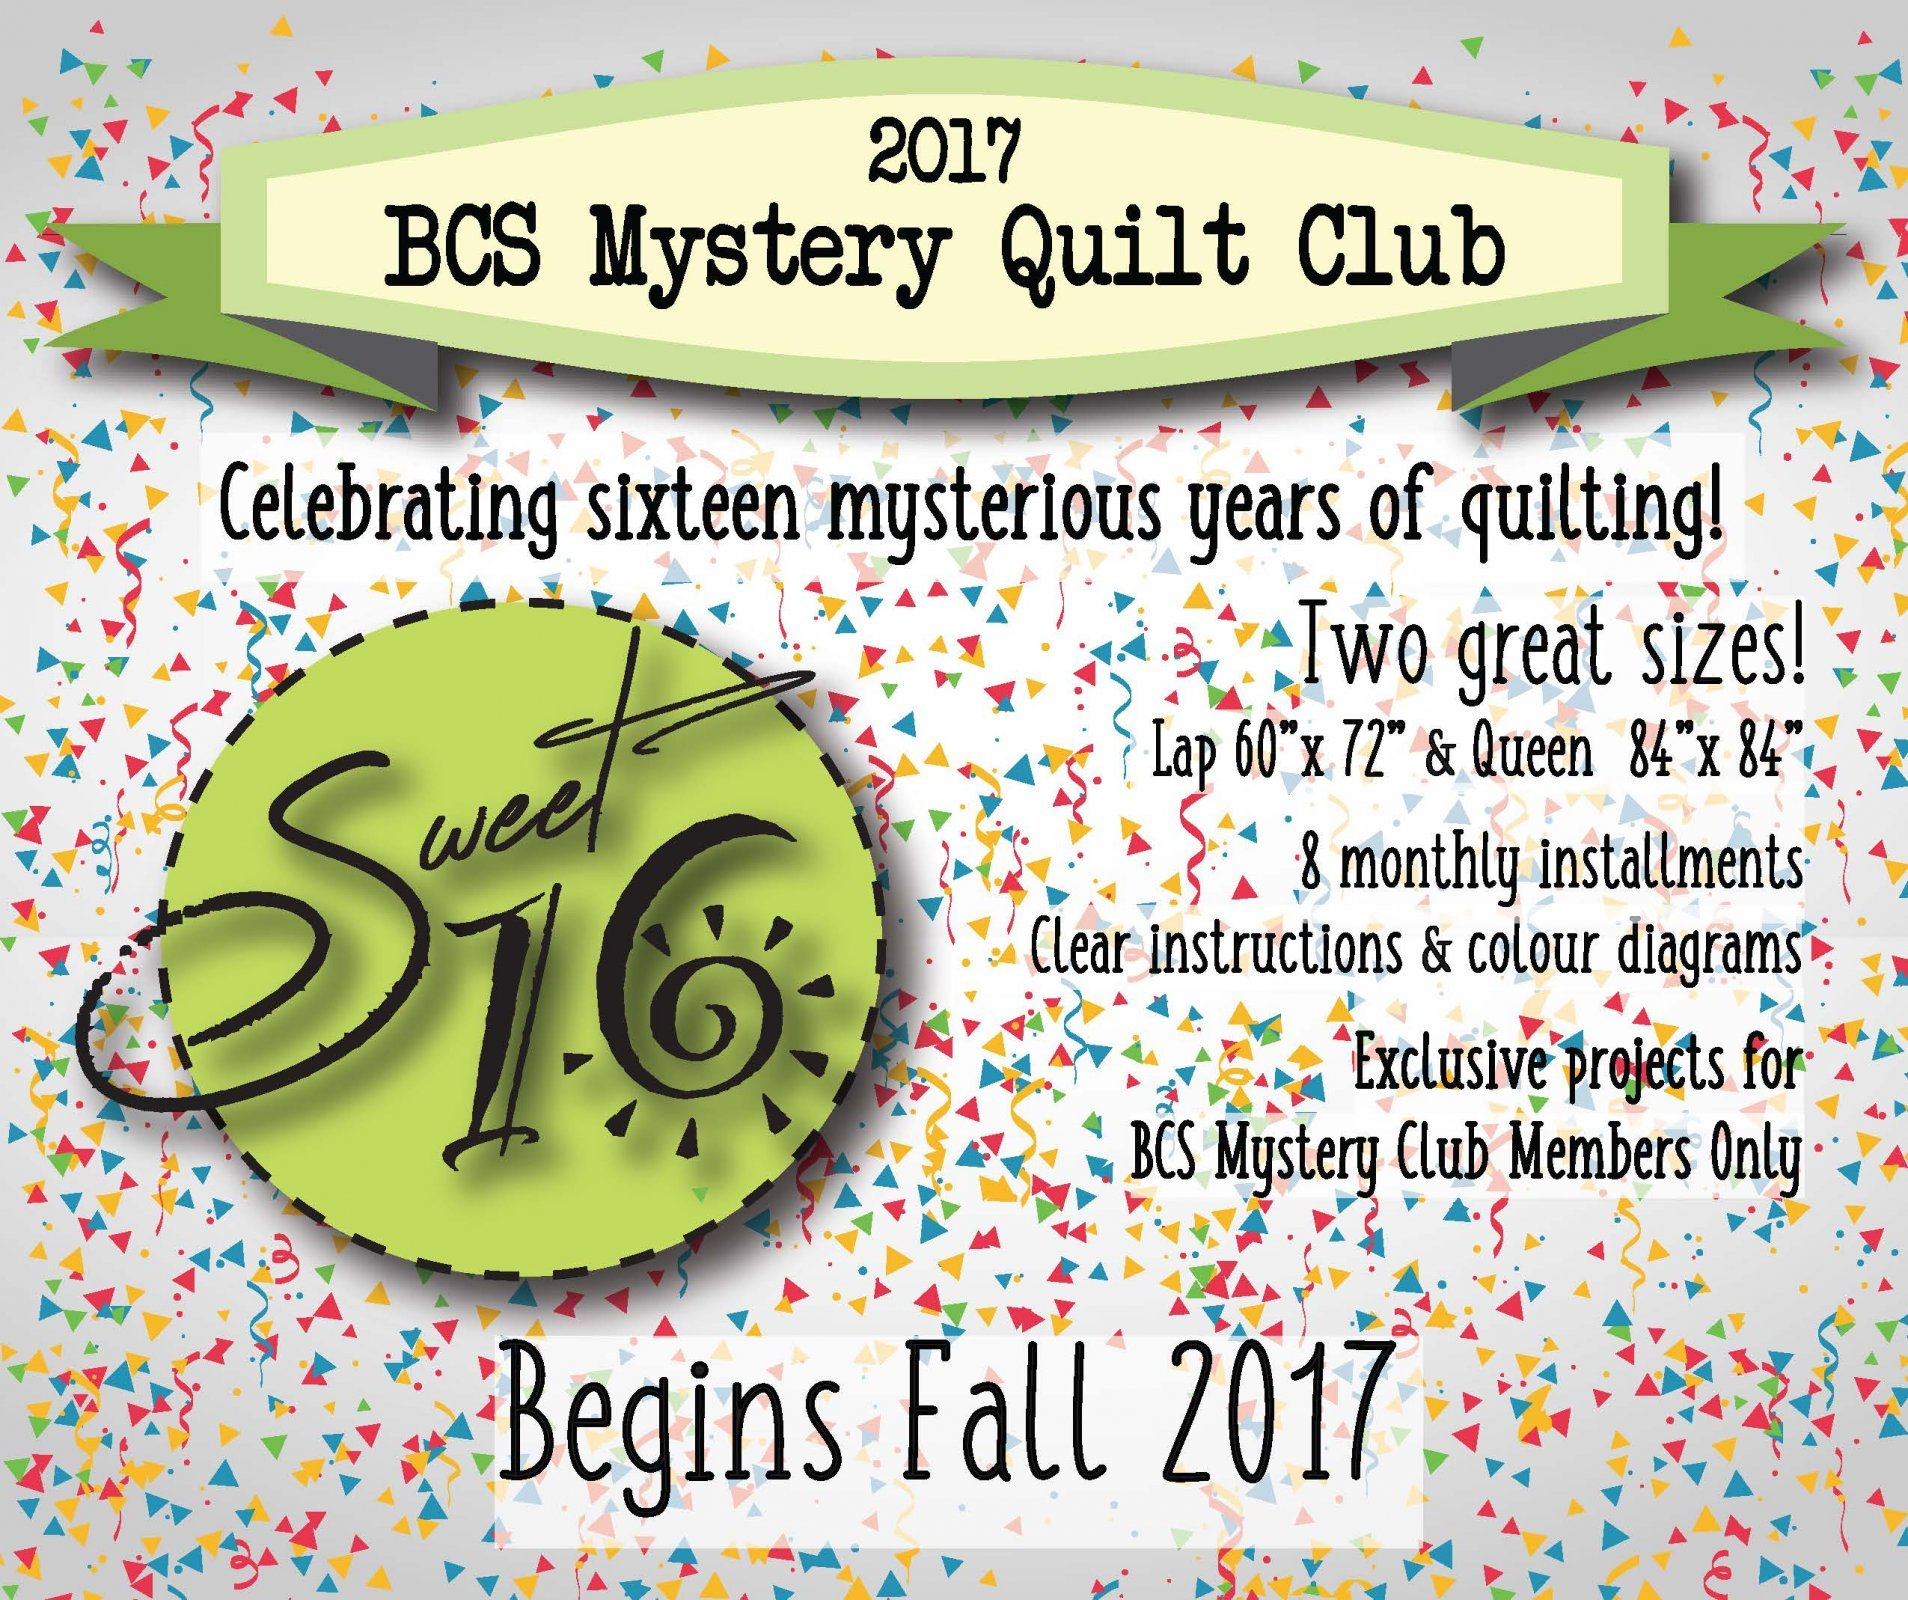 BCS Mystery Quilt Club - Sweet 16 : quilting club mysteries - Adamdwight.com